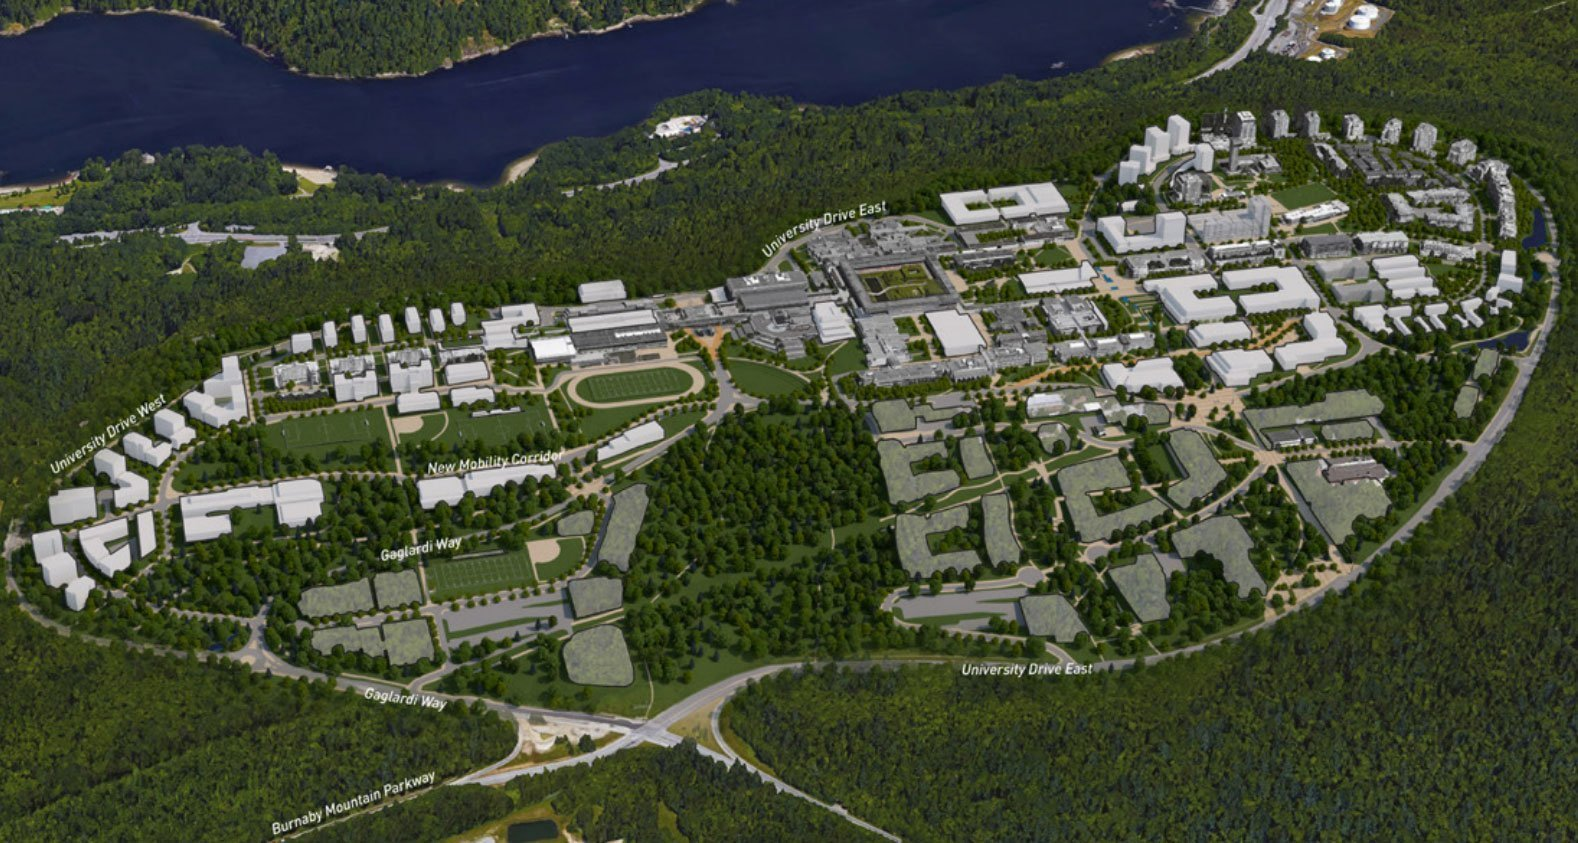 SFU Burnaby Mountain charts course for next 50 years of development